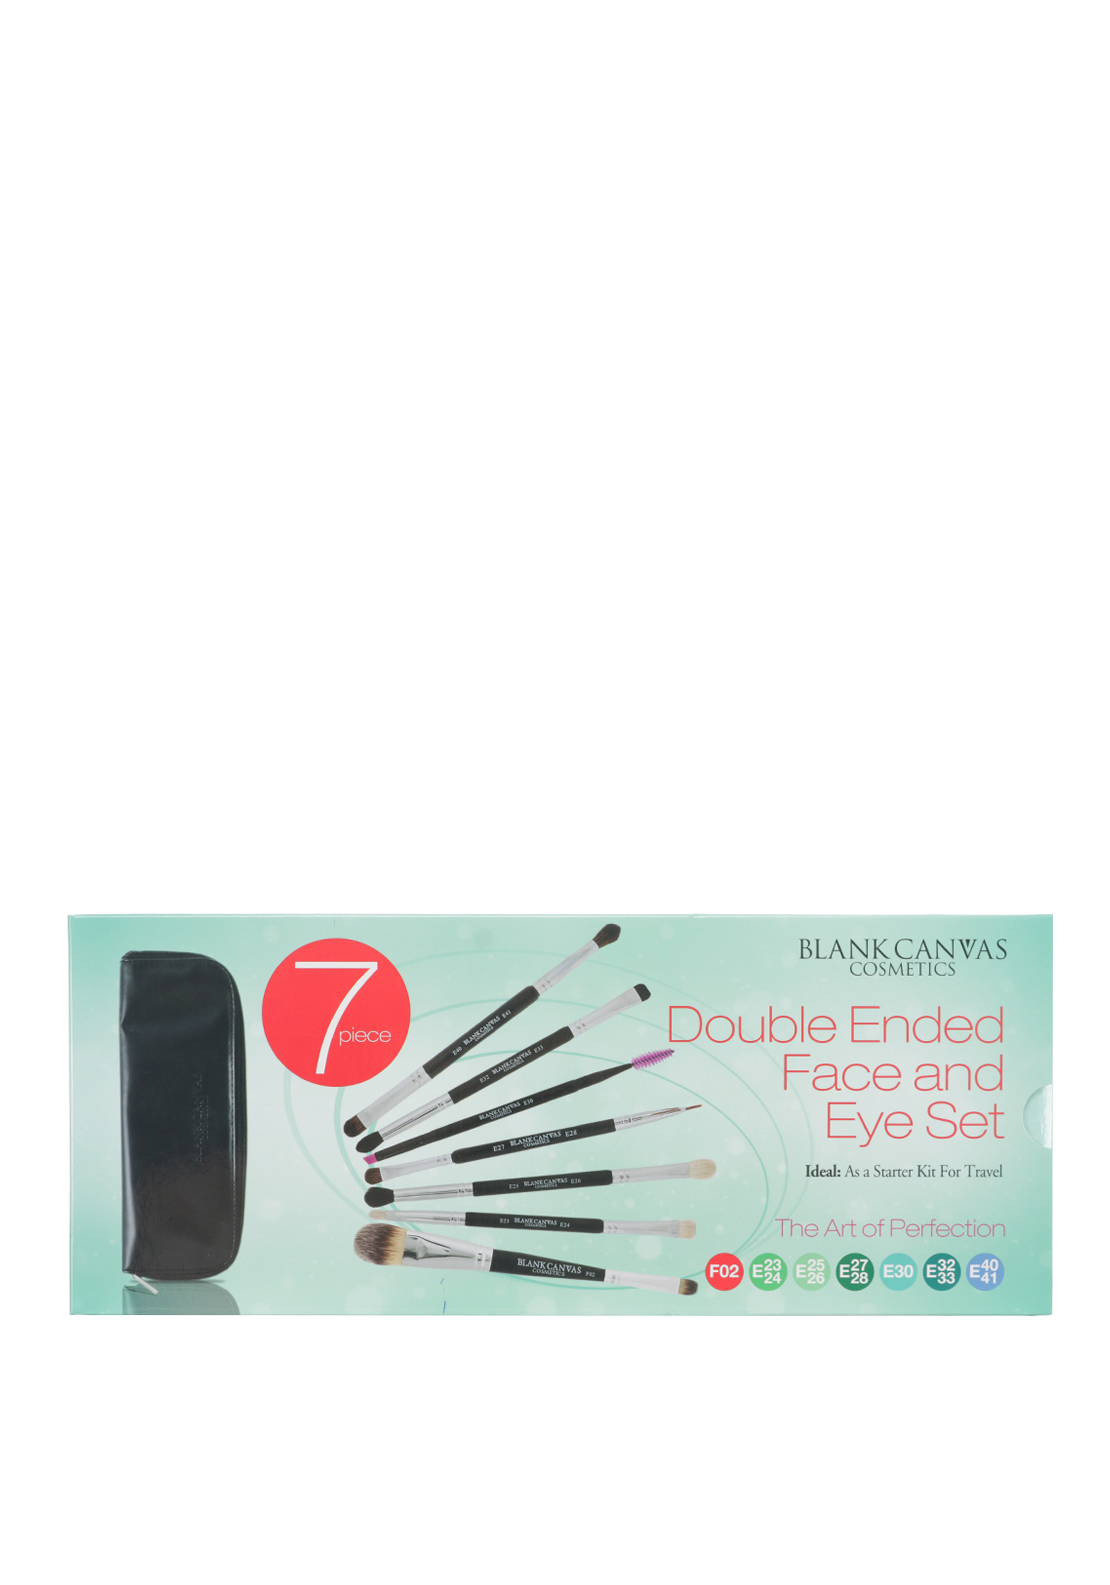 Blank Canvas Cosmetics 7 Piece Double Ended Face and Eye Set